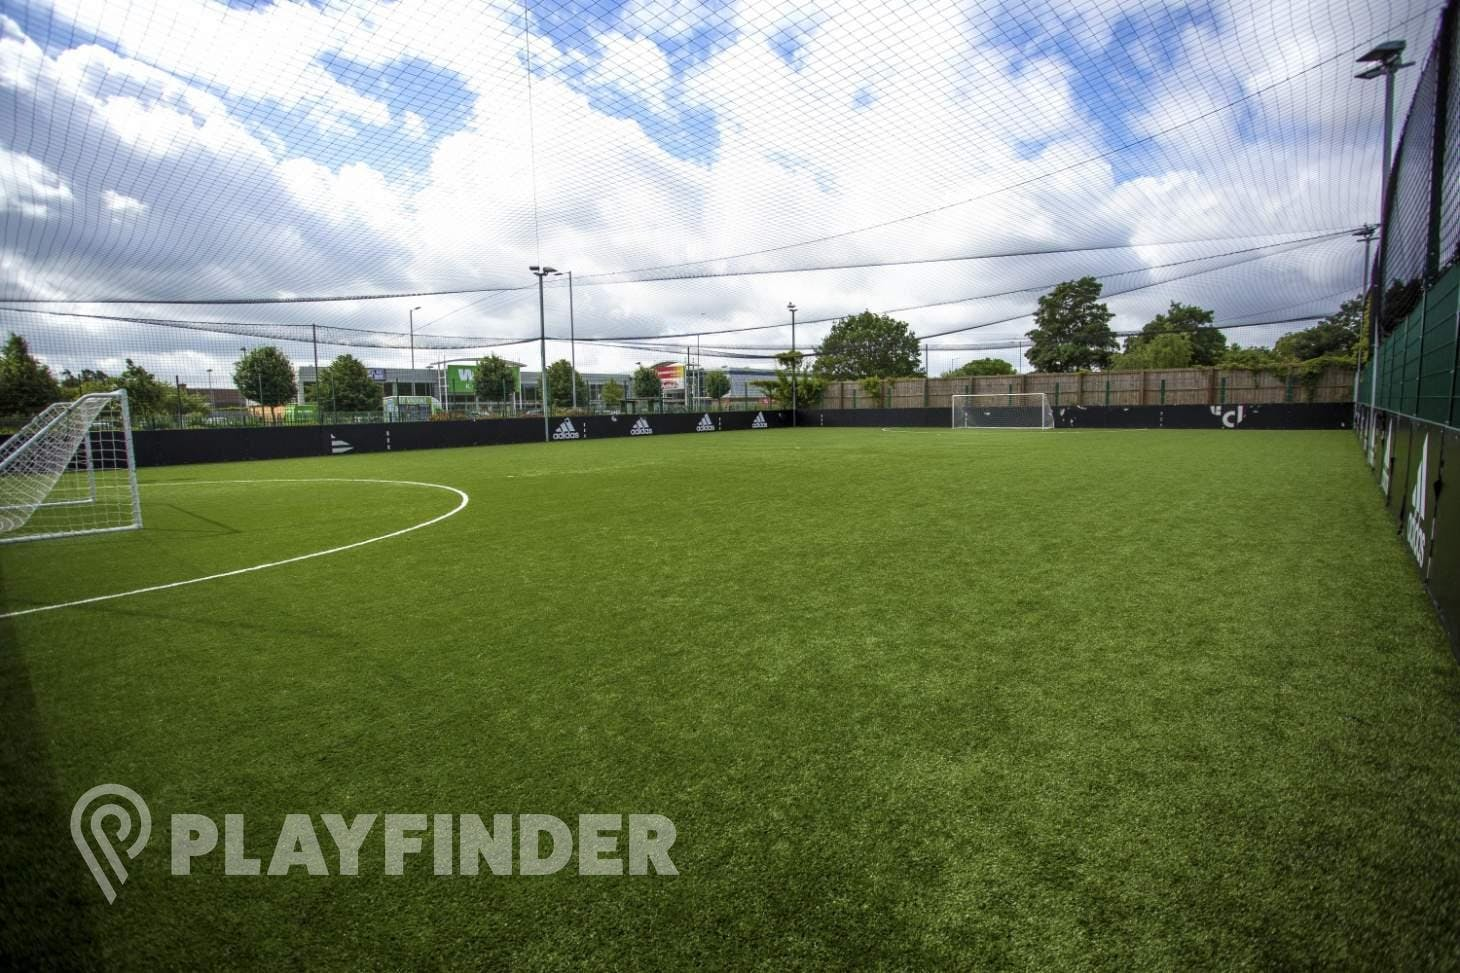 PlayFootball Romford 7 a side | 3G Astroturf football pitch